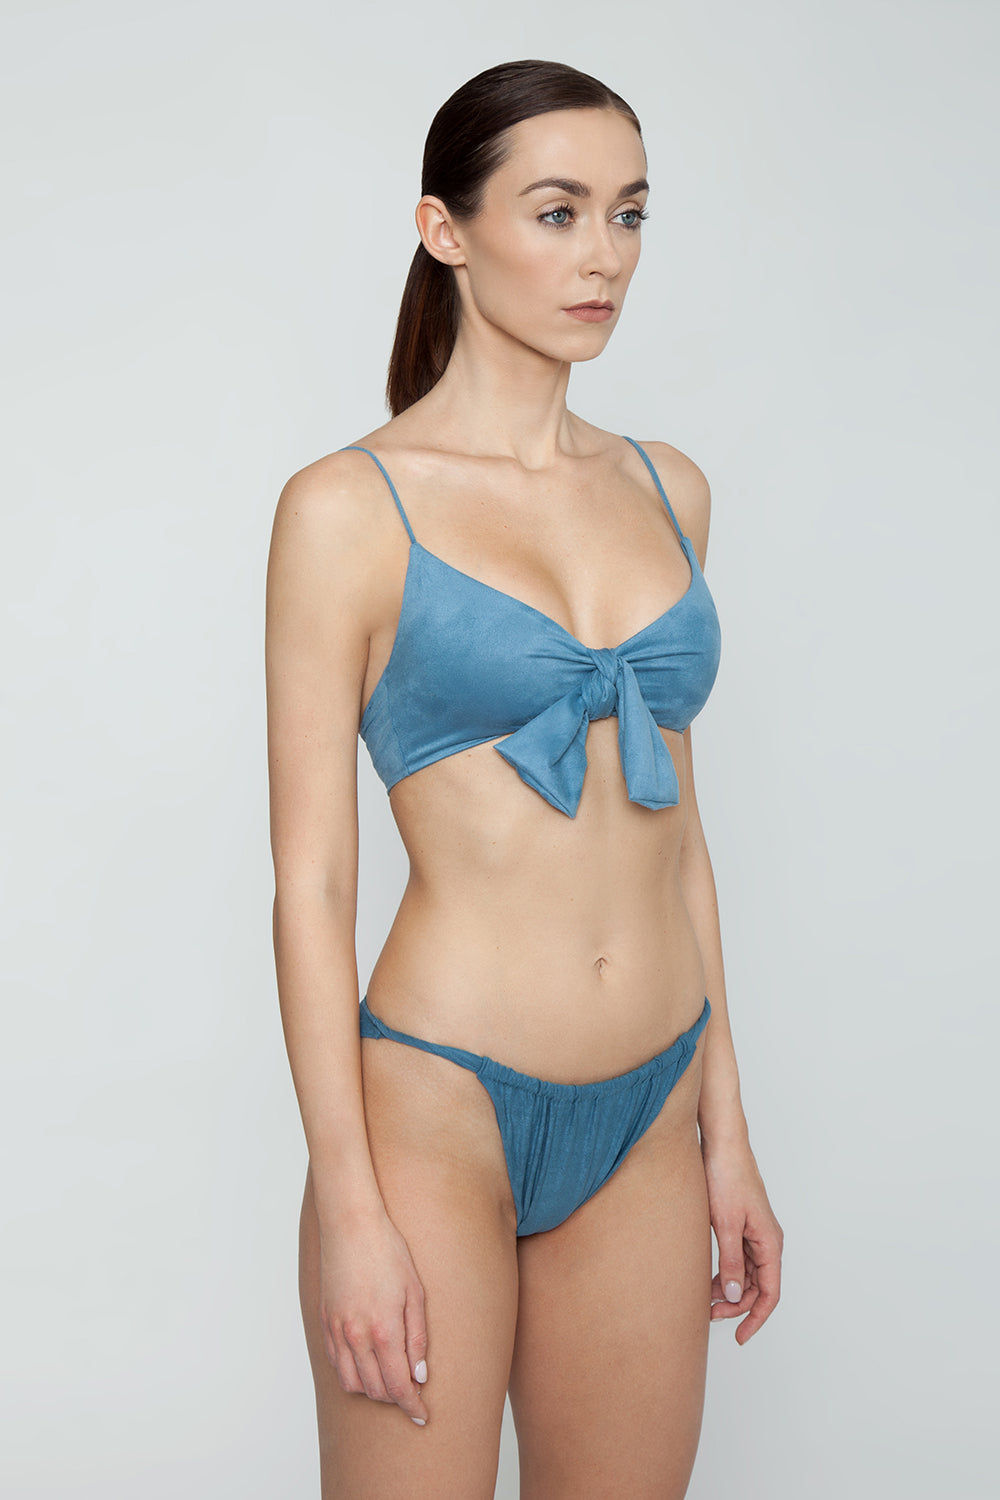 MONICA HANSEN BEACHWEAR Start Me Up Front Knot Bikini Top - Blue Bikini Top |  Blue| Monica Hansen Beachwear Start Me Up Front Knot Bikini Top - Blue. V neckline Thick front tie detail Adjustable shoulder straps Back clasp closure Double fabric on the inside instead of lining Italian fabric 85% Nylon 15% Elastane Manufactured in Italy Hand wash cold.  Dry Flat Side View